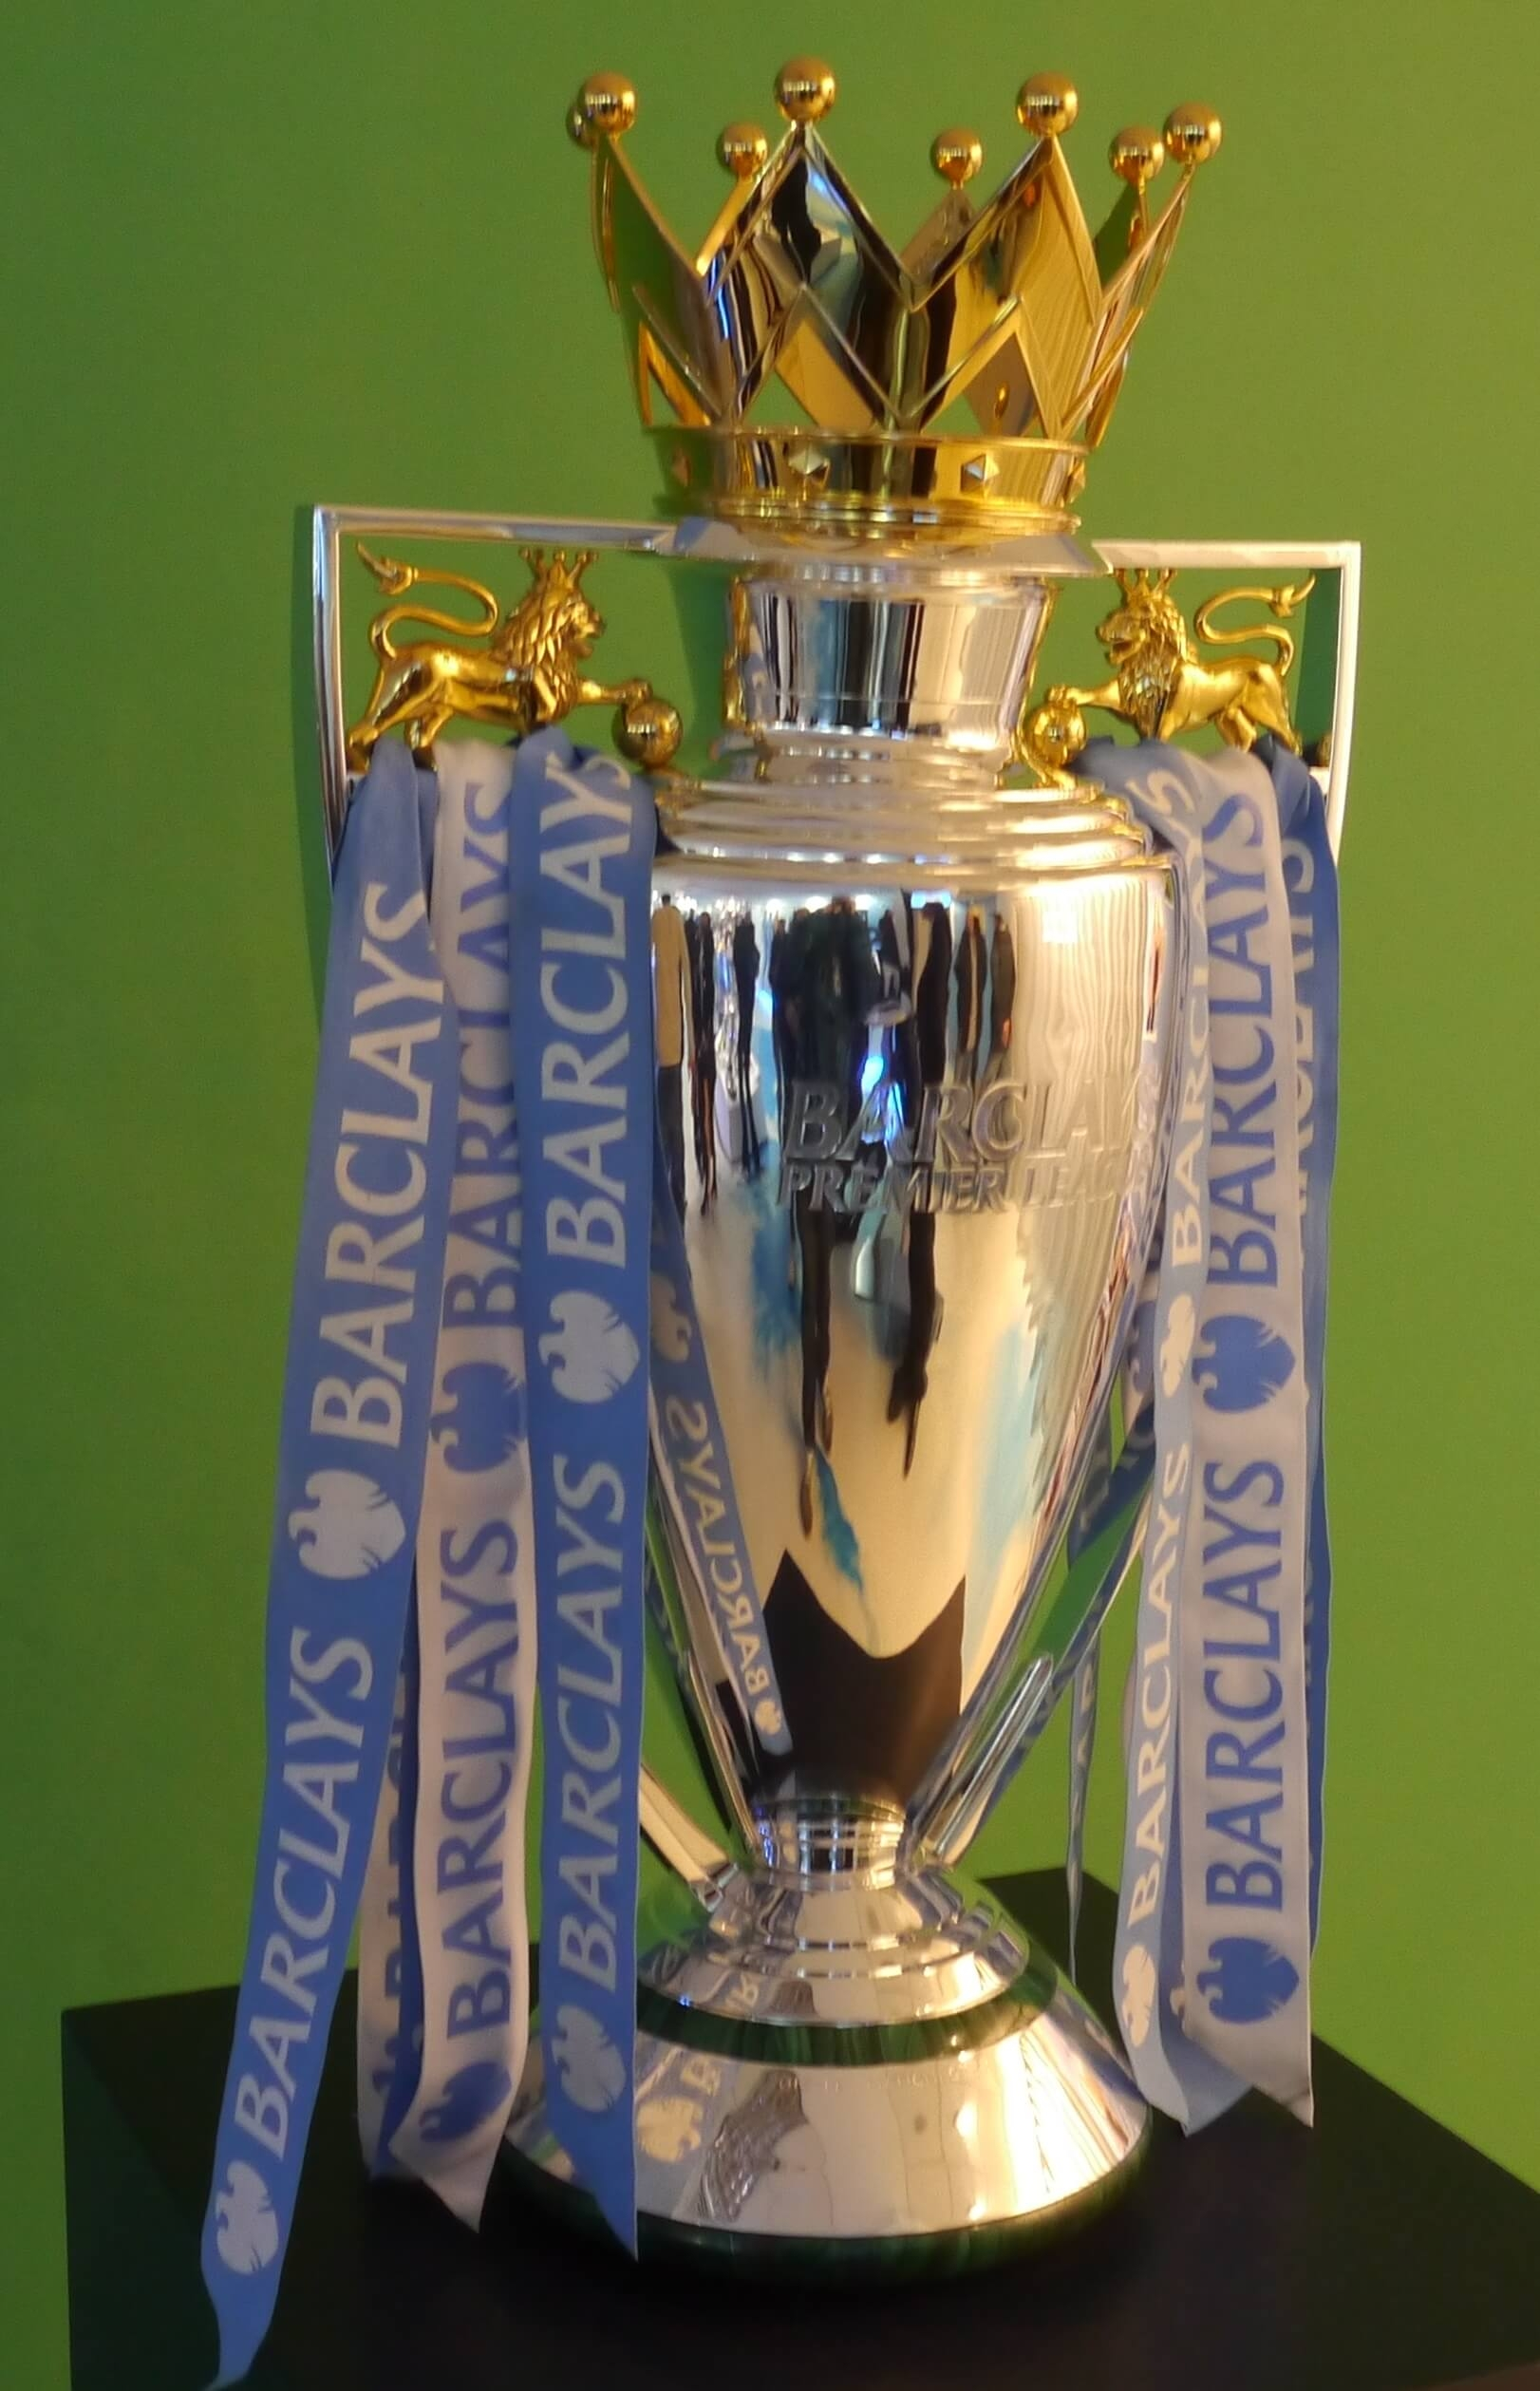 The Premier League Trophy on Display